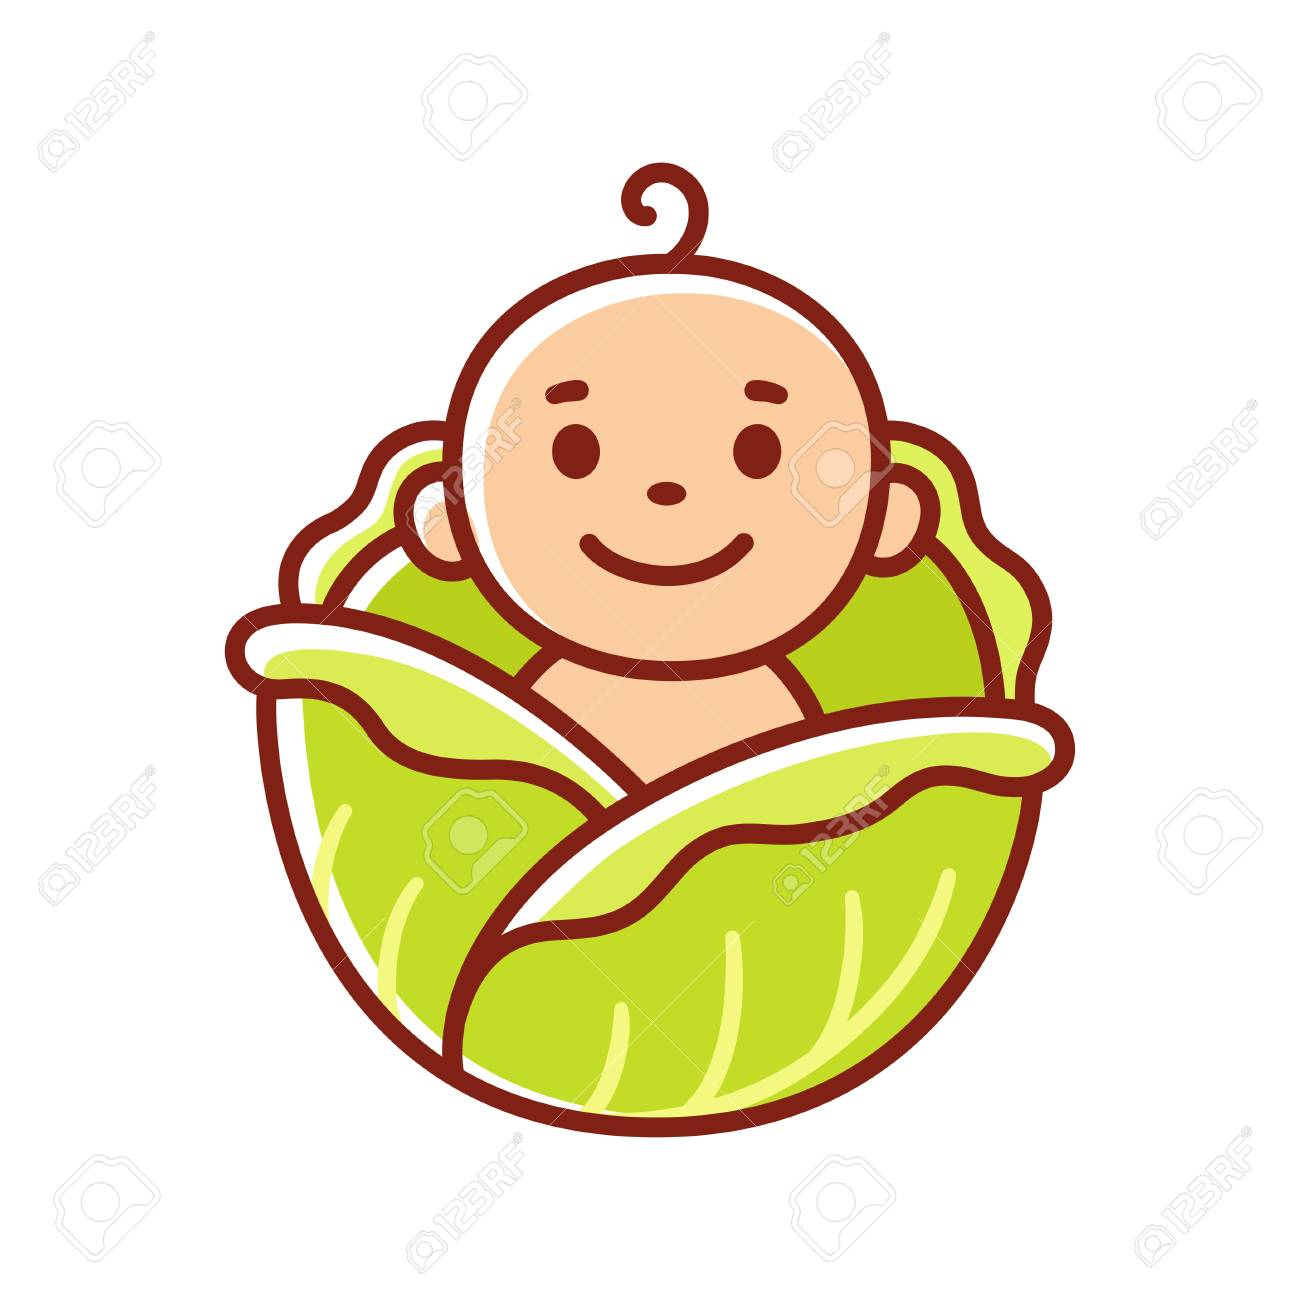 Cute cartoon baby found in cabbage patch. Funny explanation where...